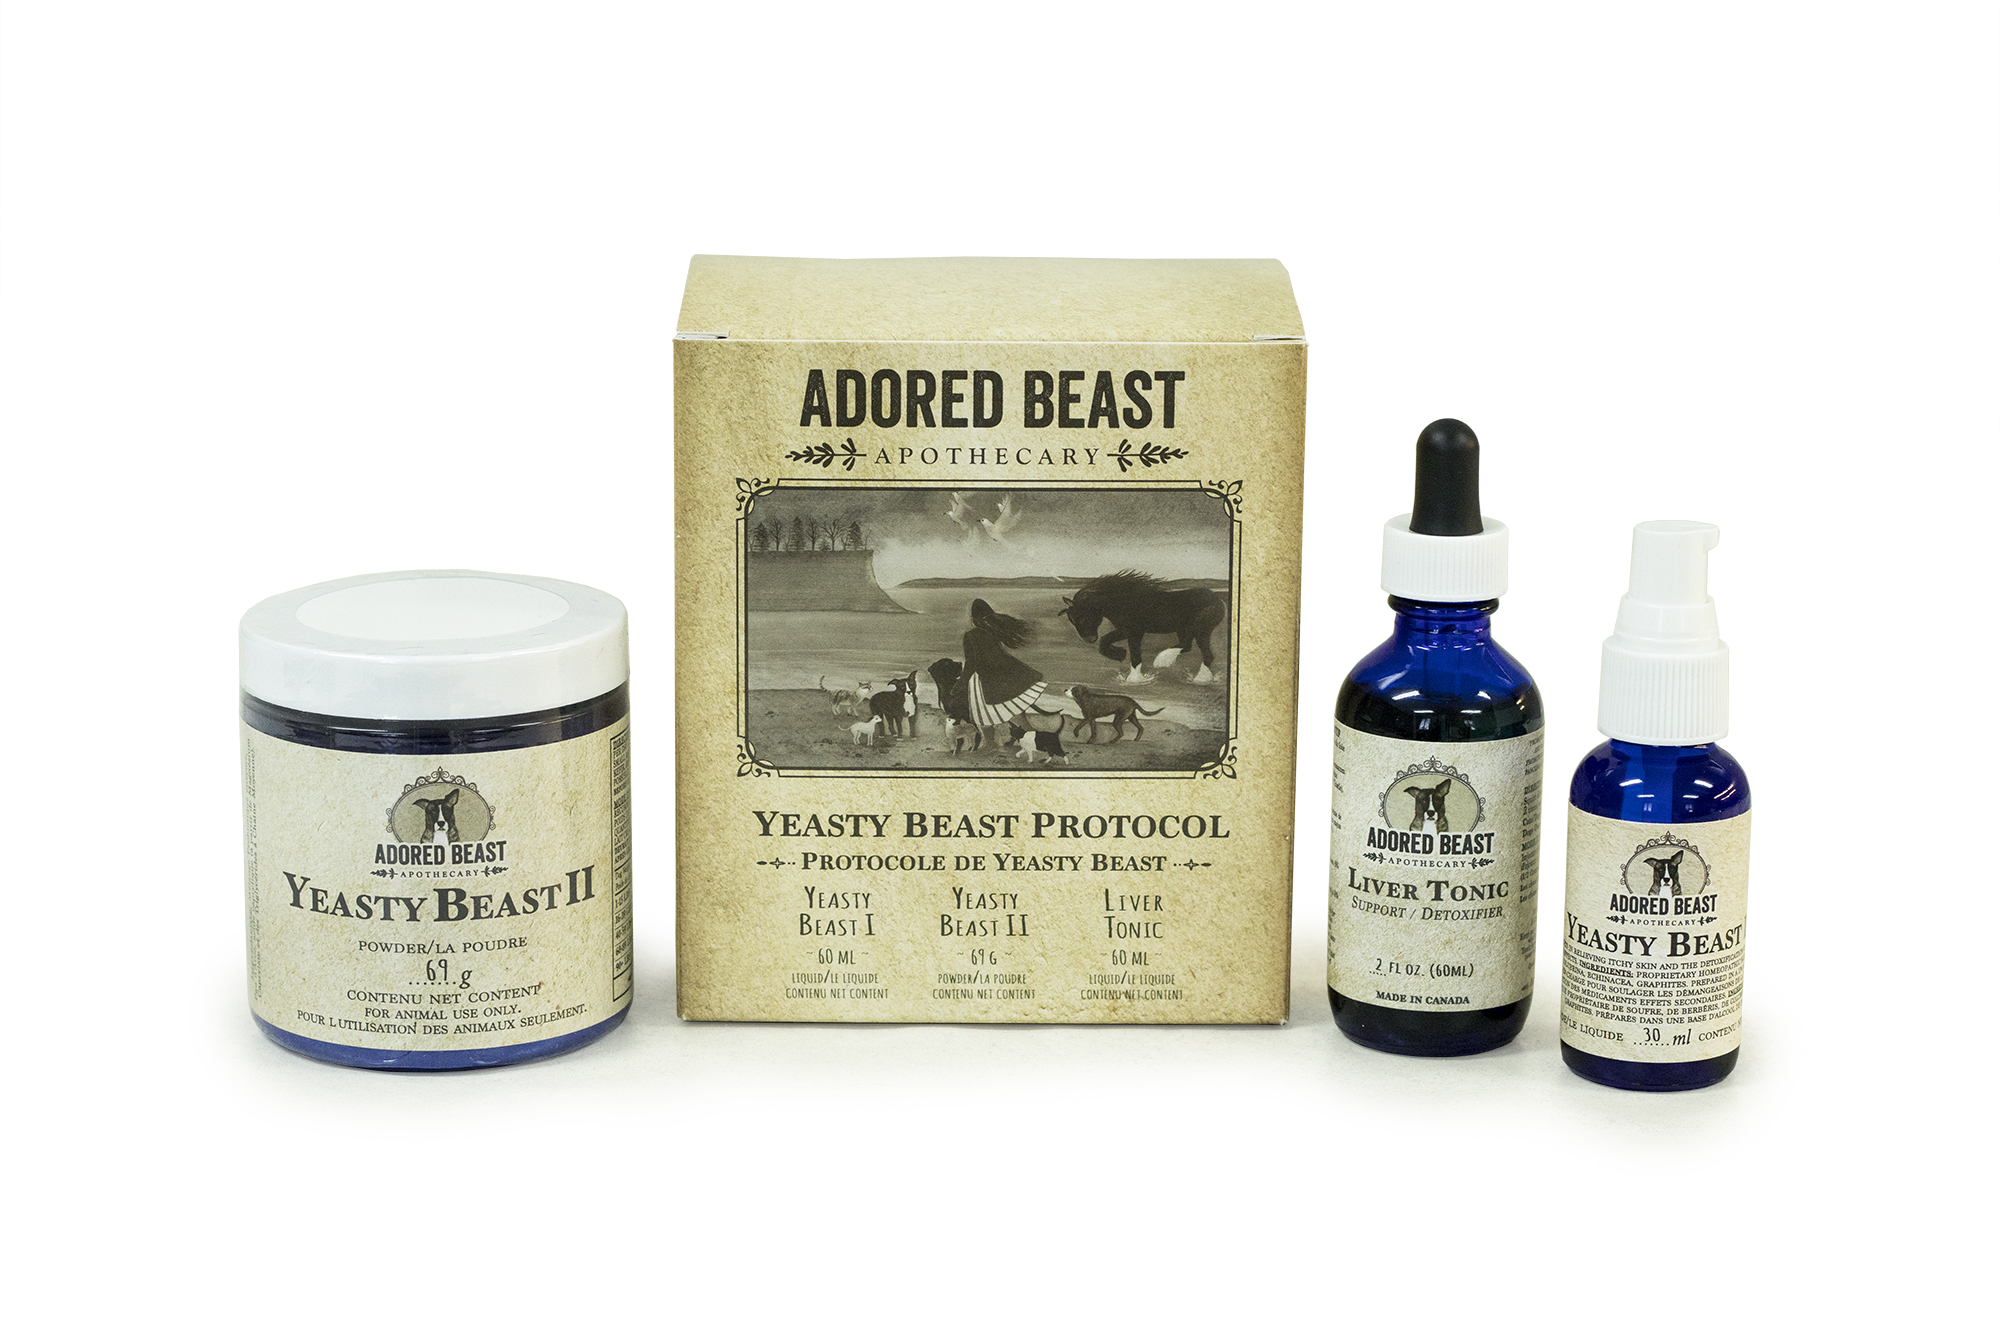 Adored Beast Yeasty Beast Protocol (3 Product Kit)